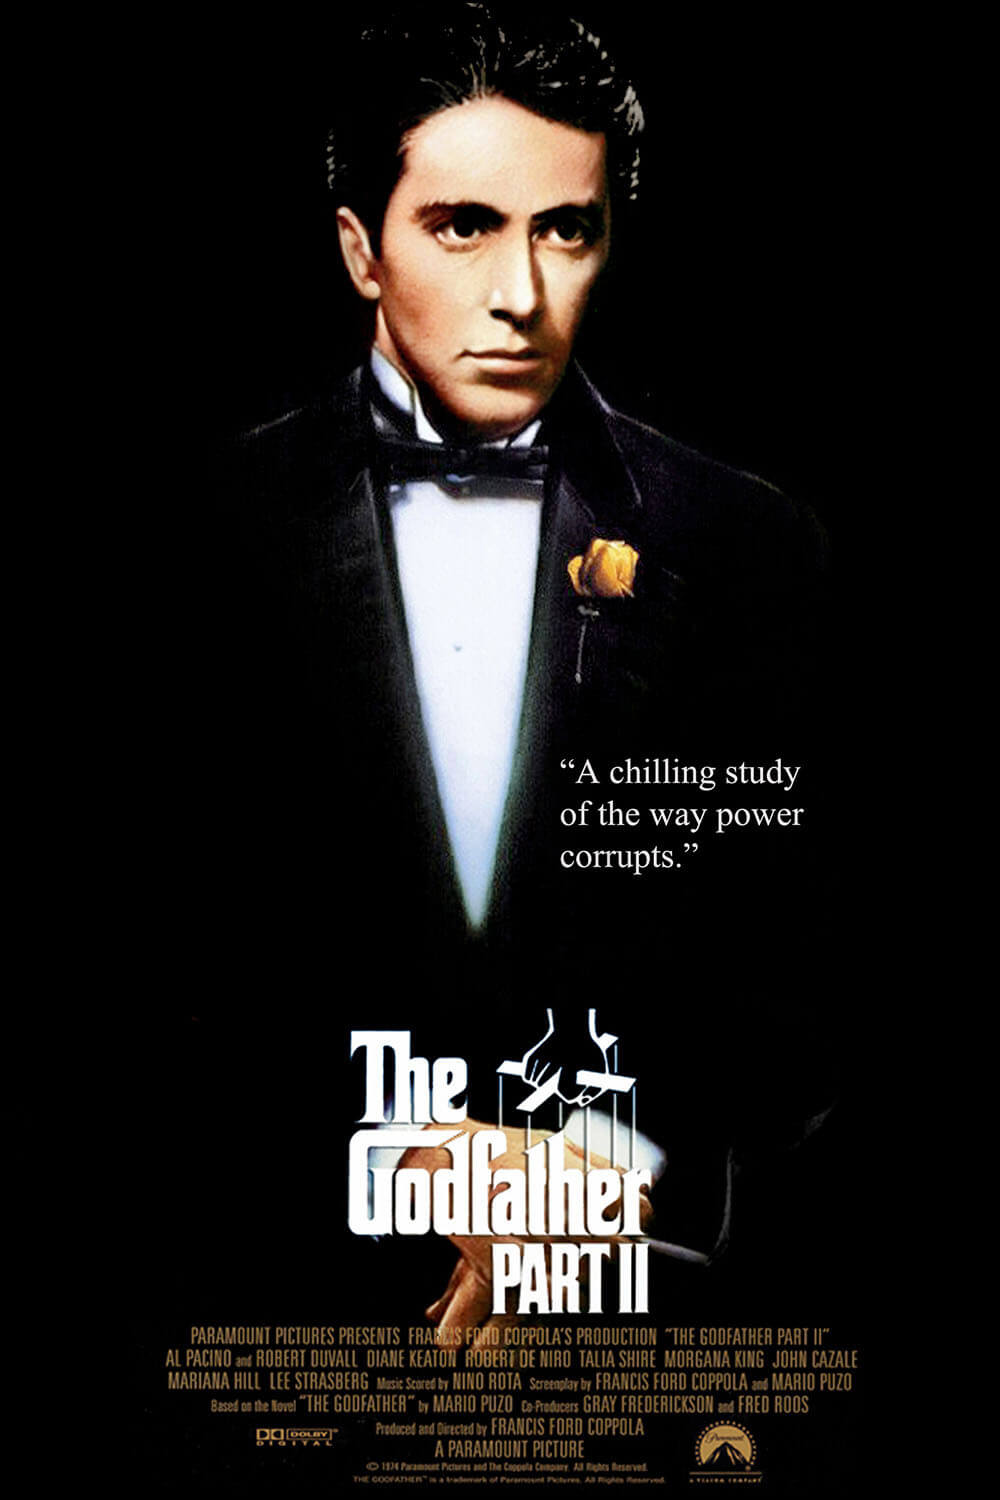 The Godfather Part II (R)